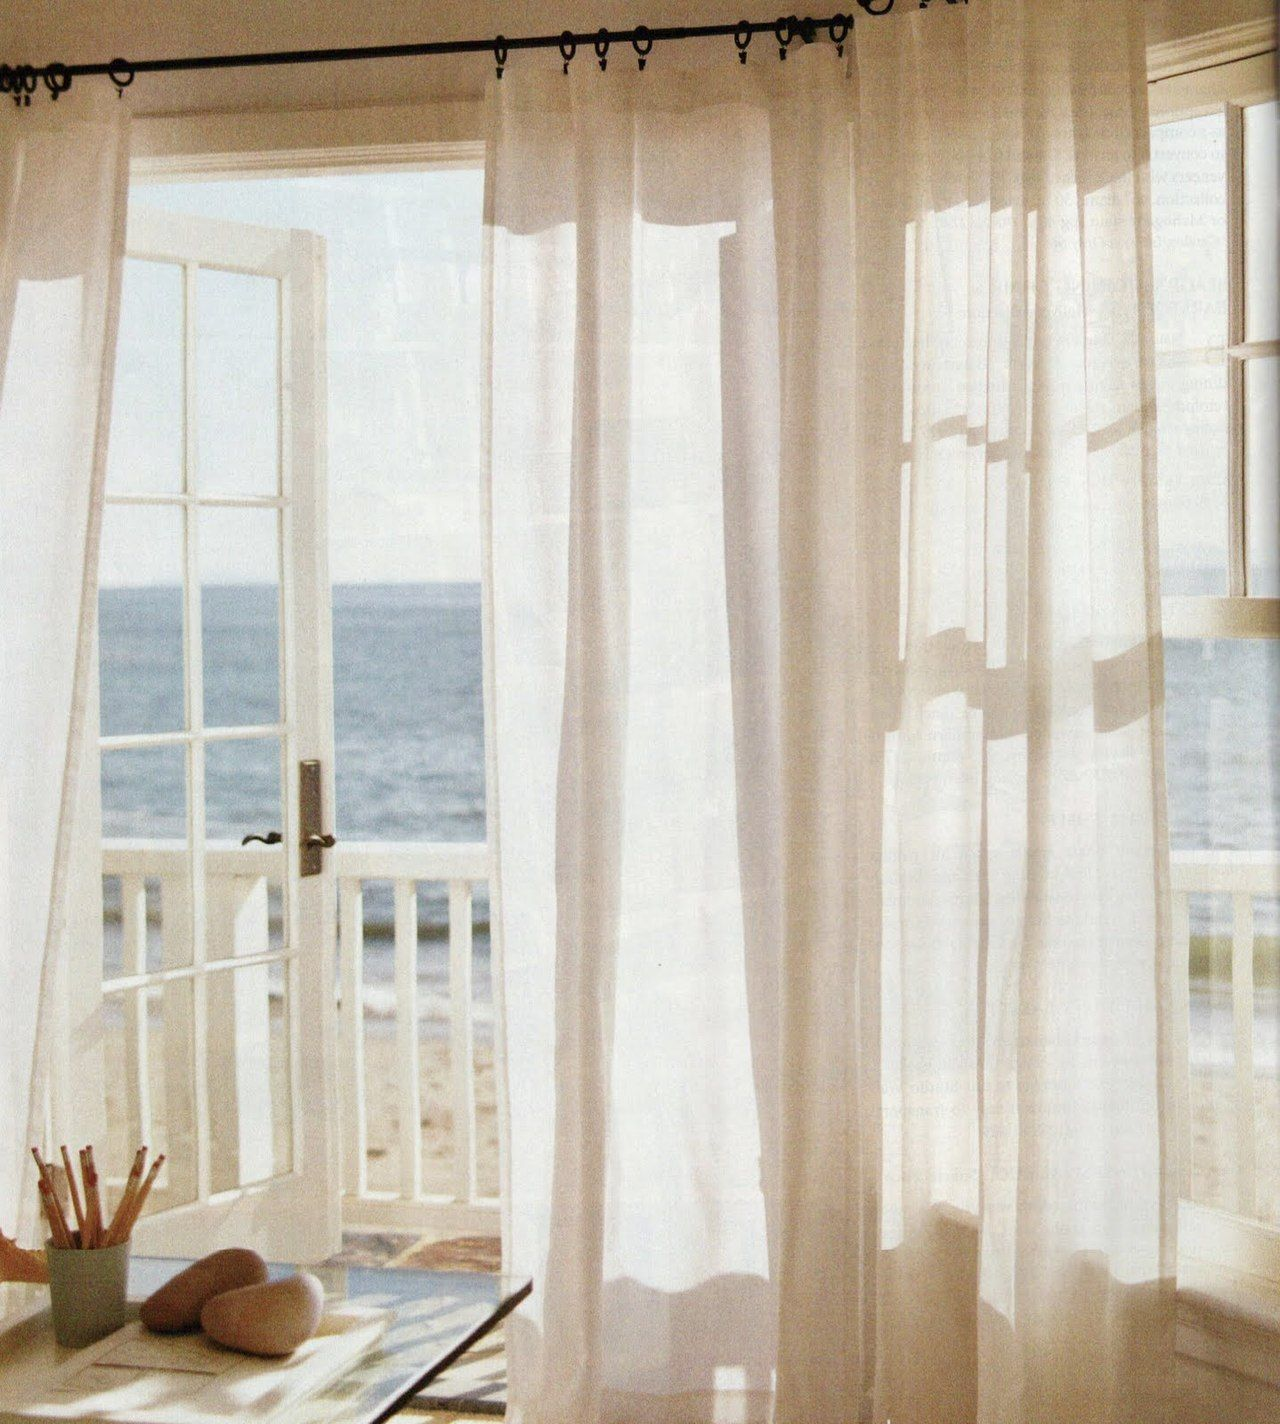 Cape Cod Collegiate House By The Sea Cottages By The Sea French Doors